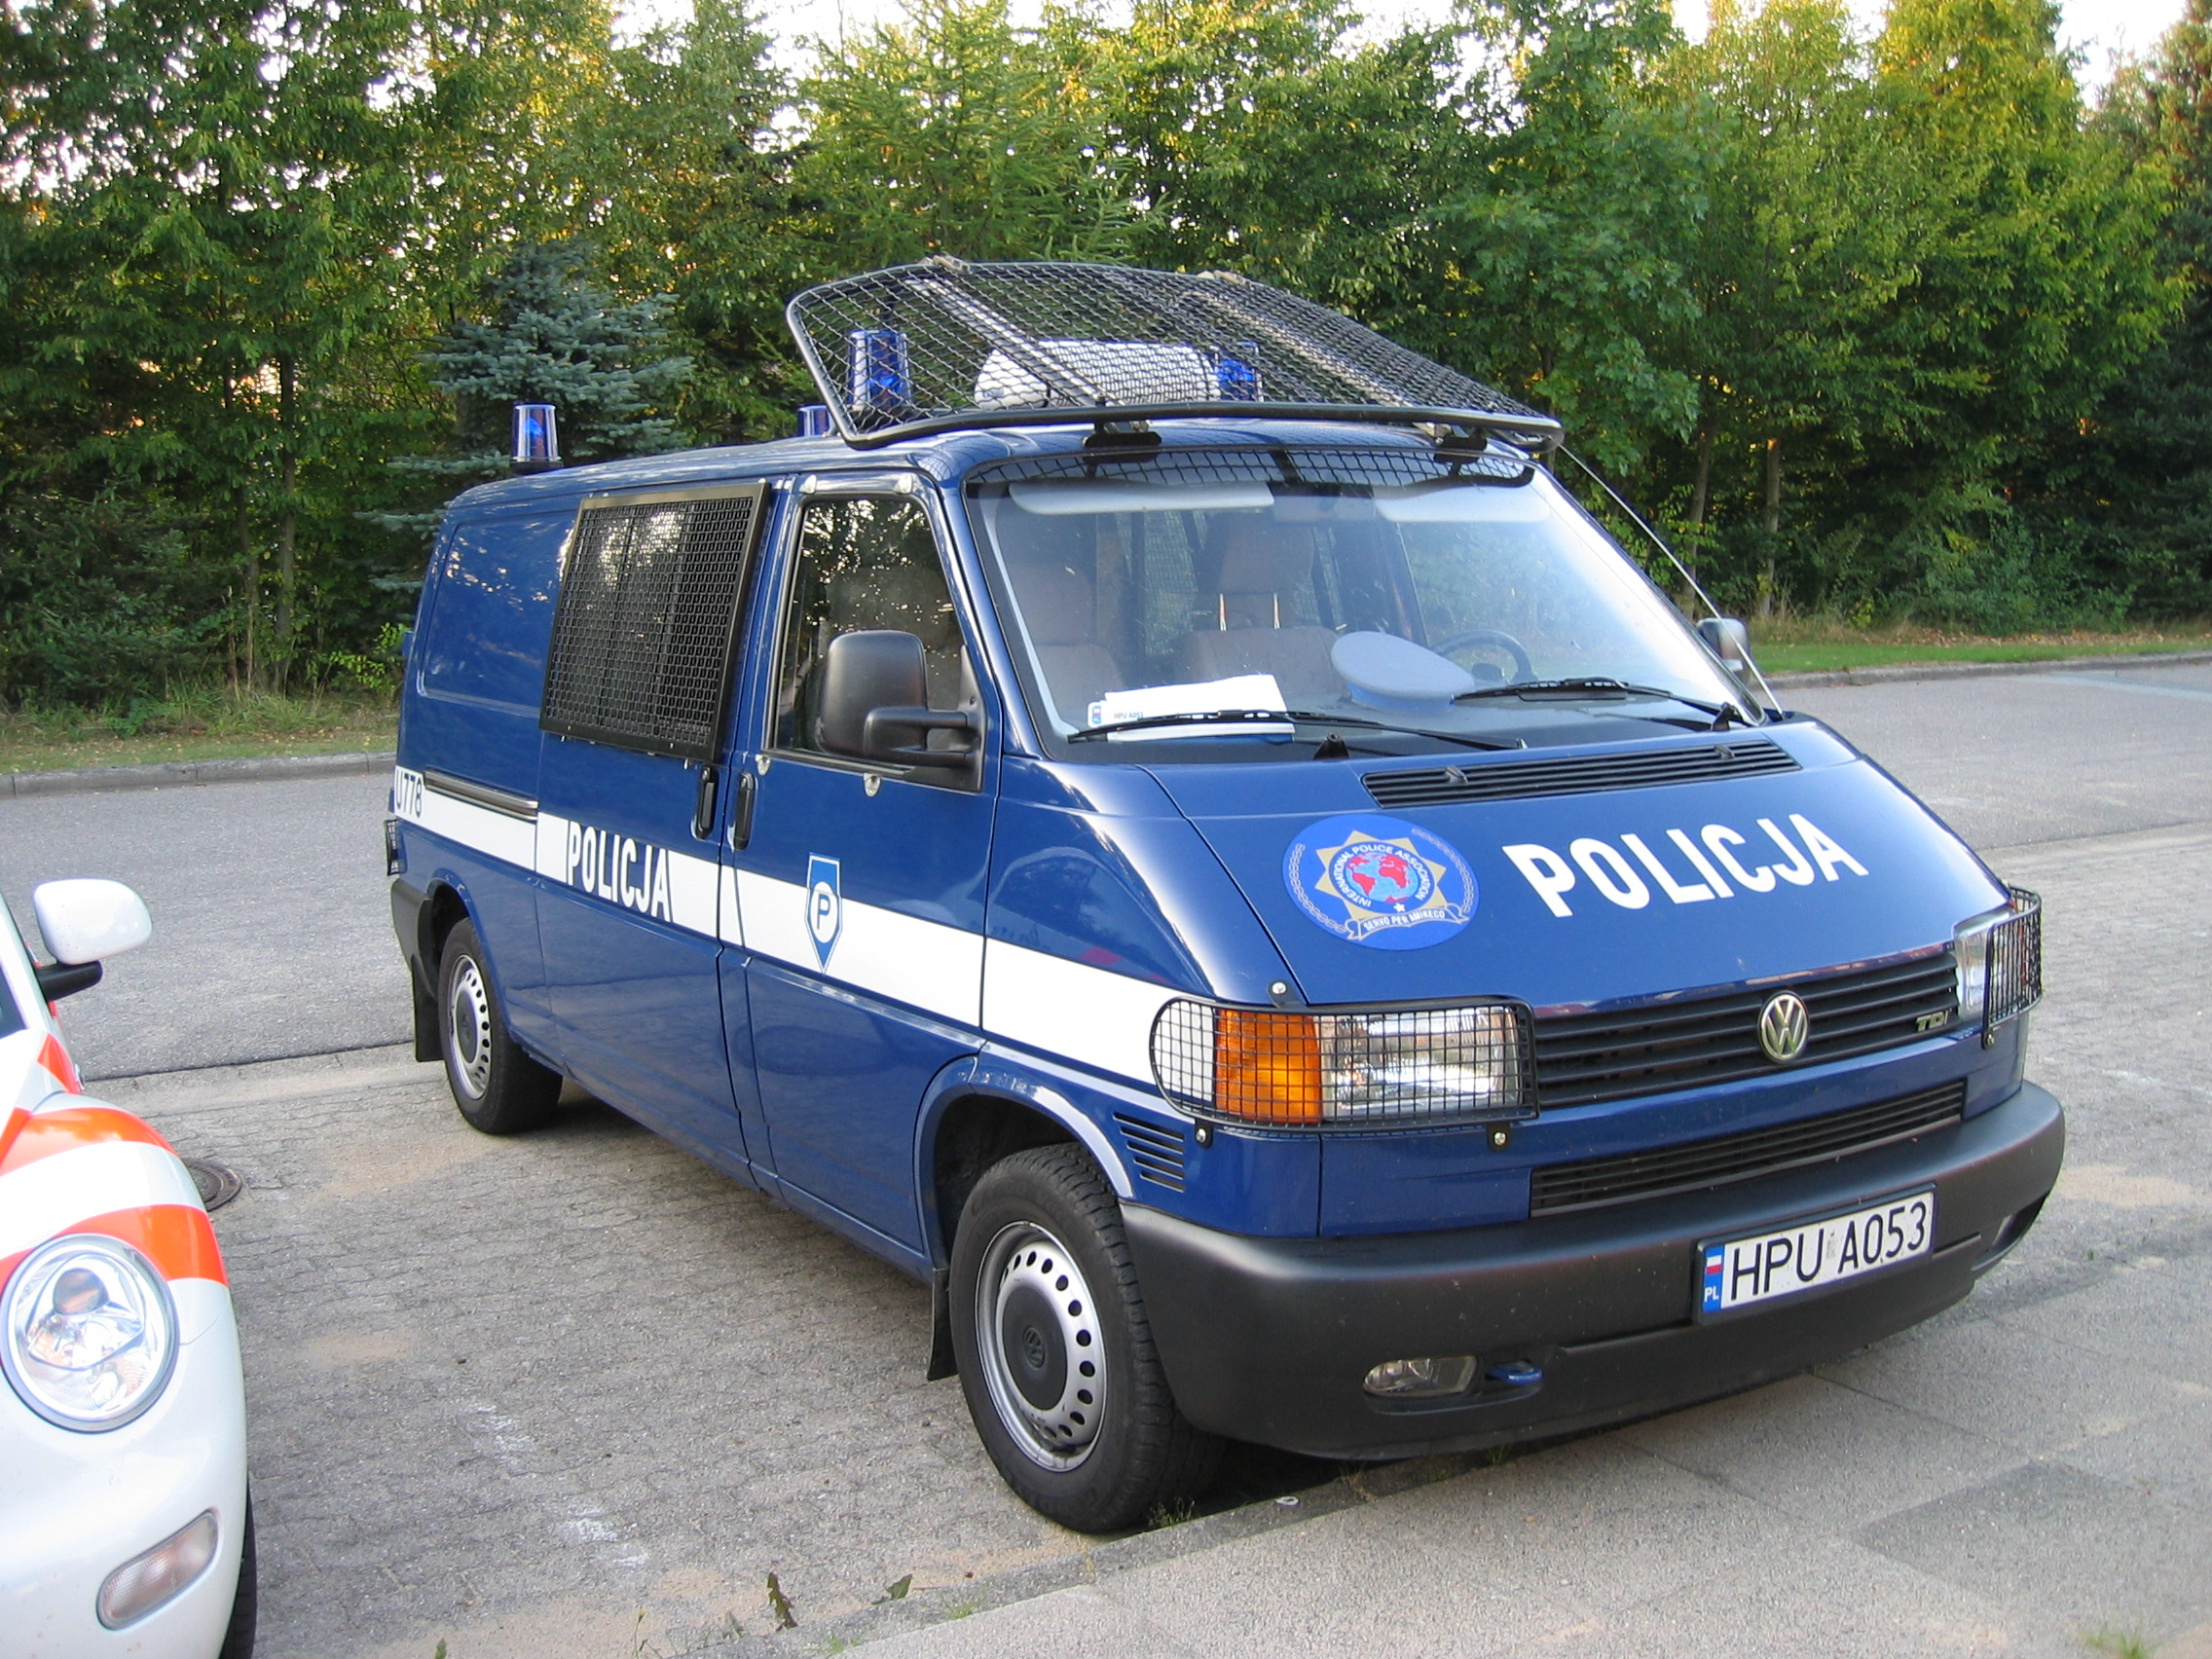 file polish police car 03 jpg wikimedia commons. Black Bedroom Furniture Sets. Home Design Ideas